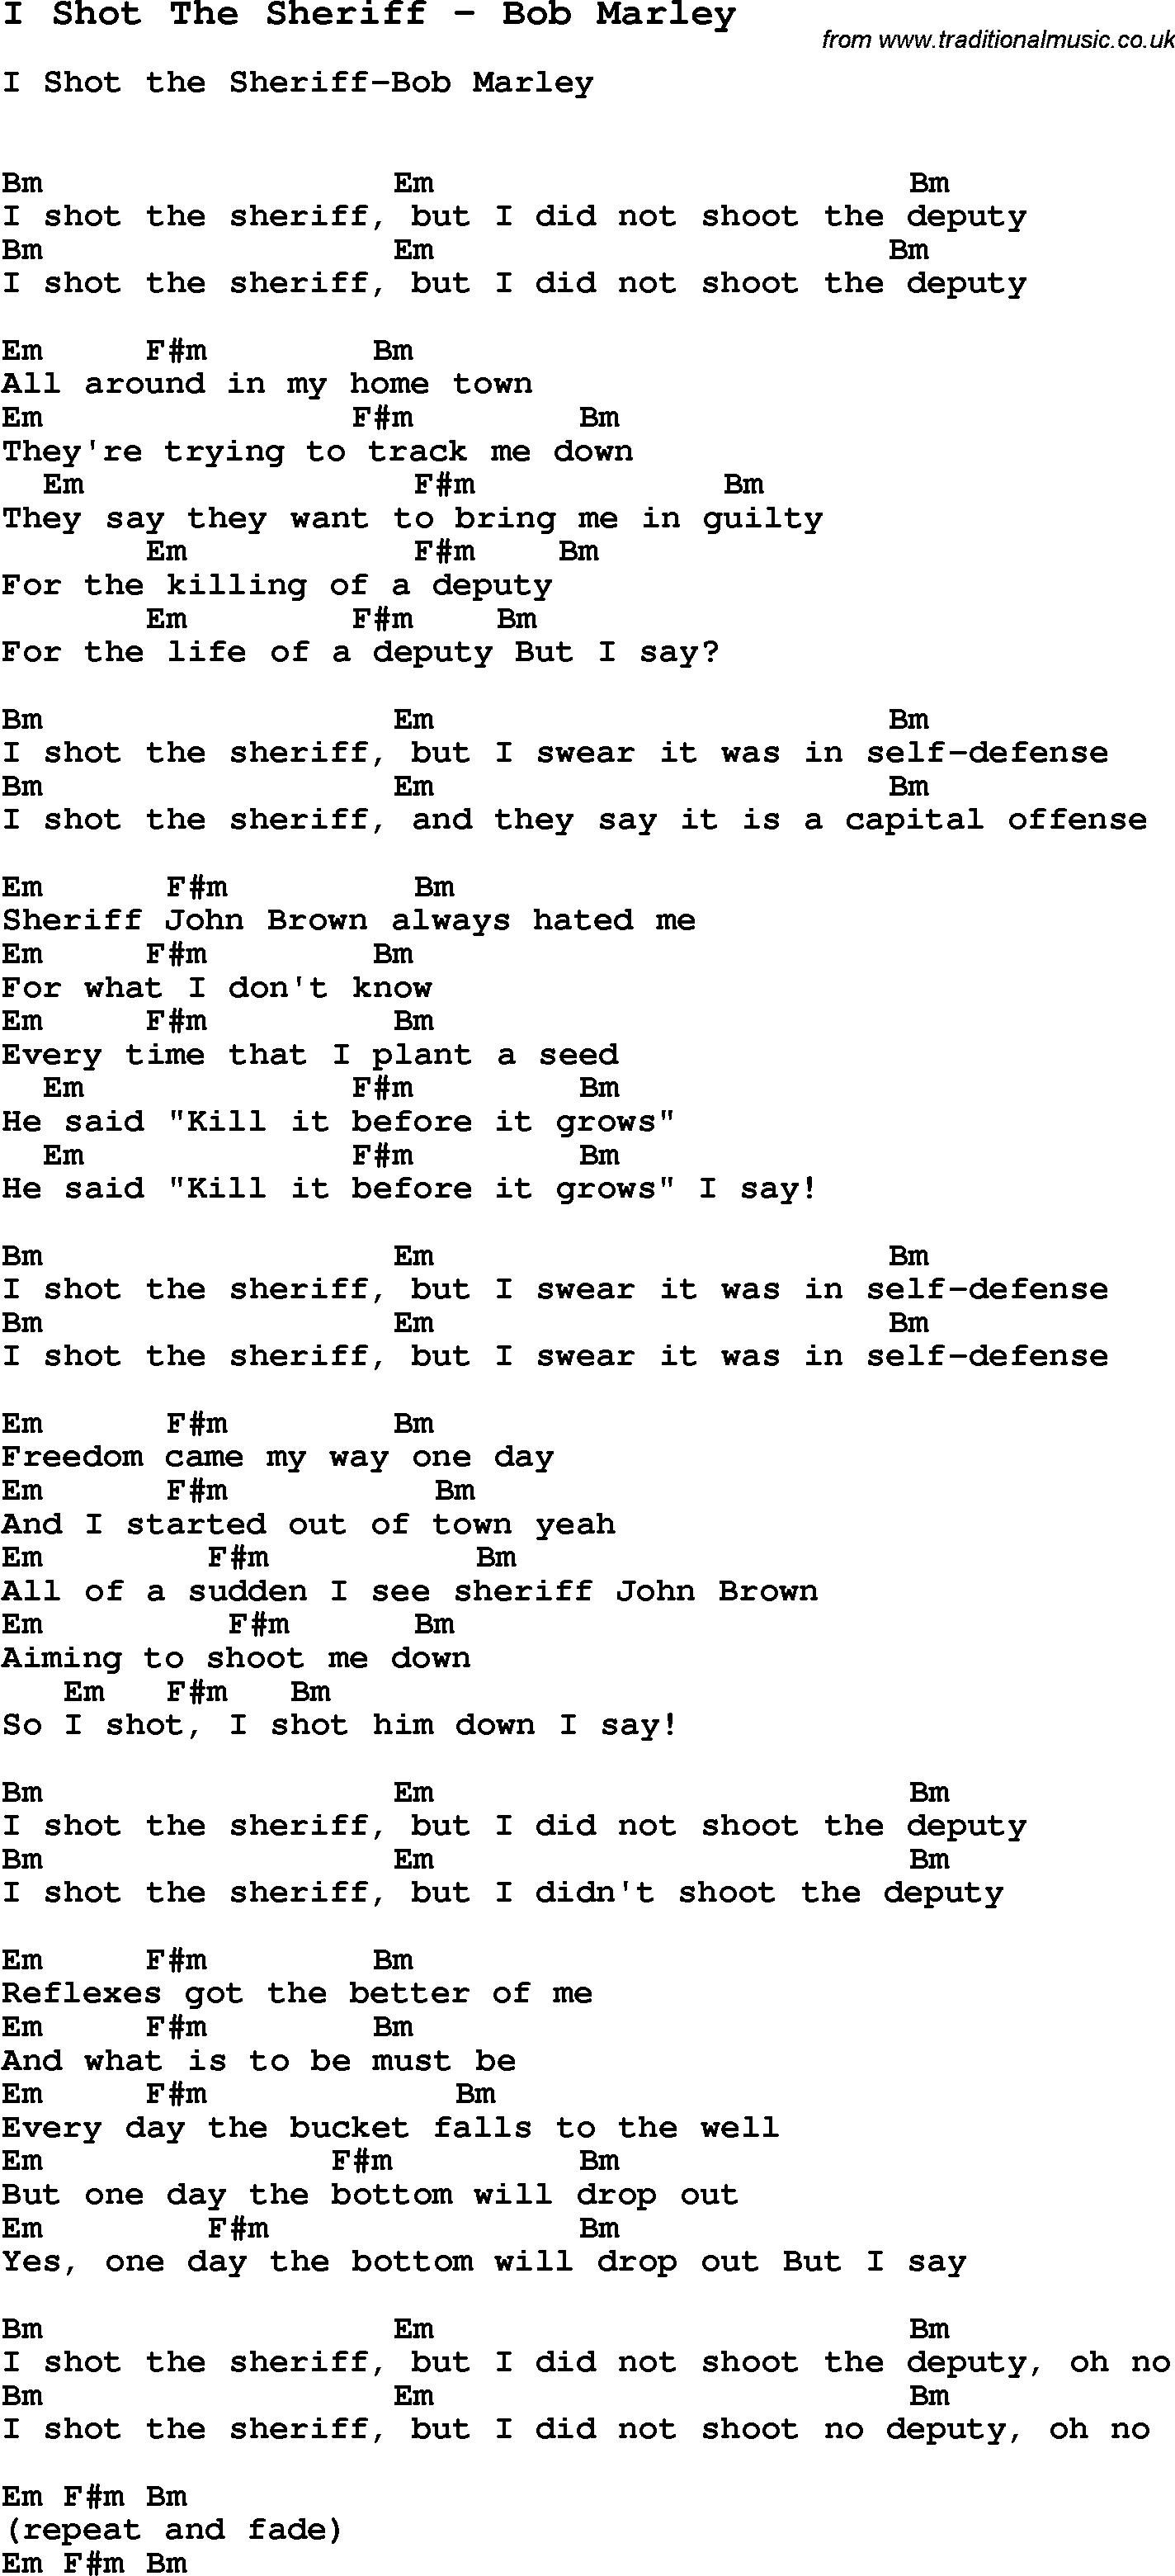 Song I Shot The Sheriff By Bob Marley With Lyrics For Vocal